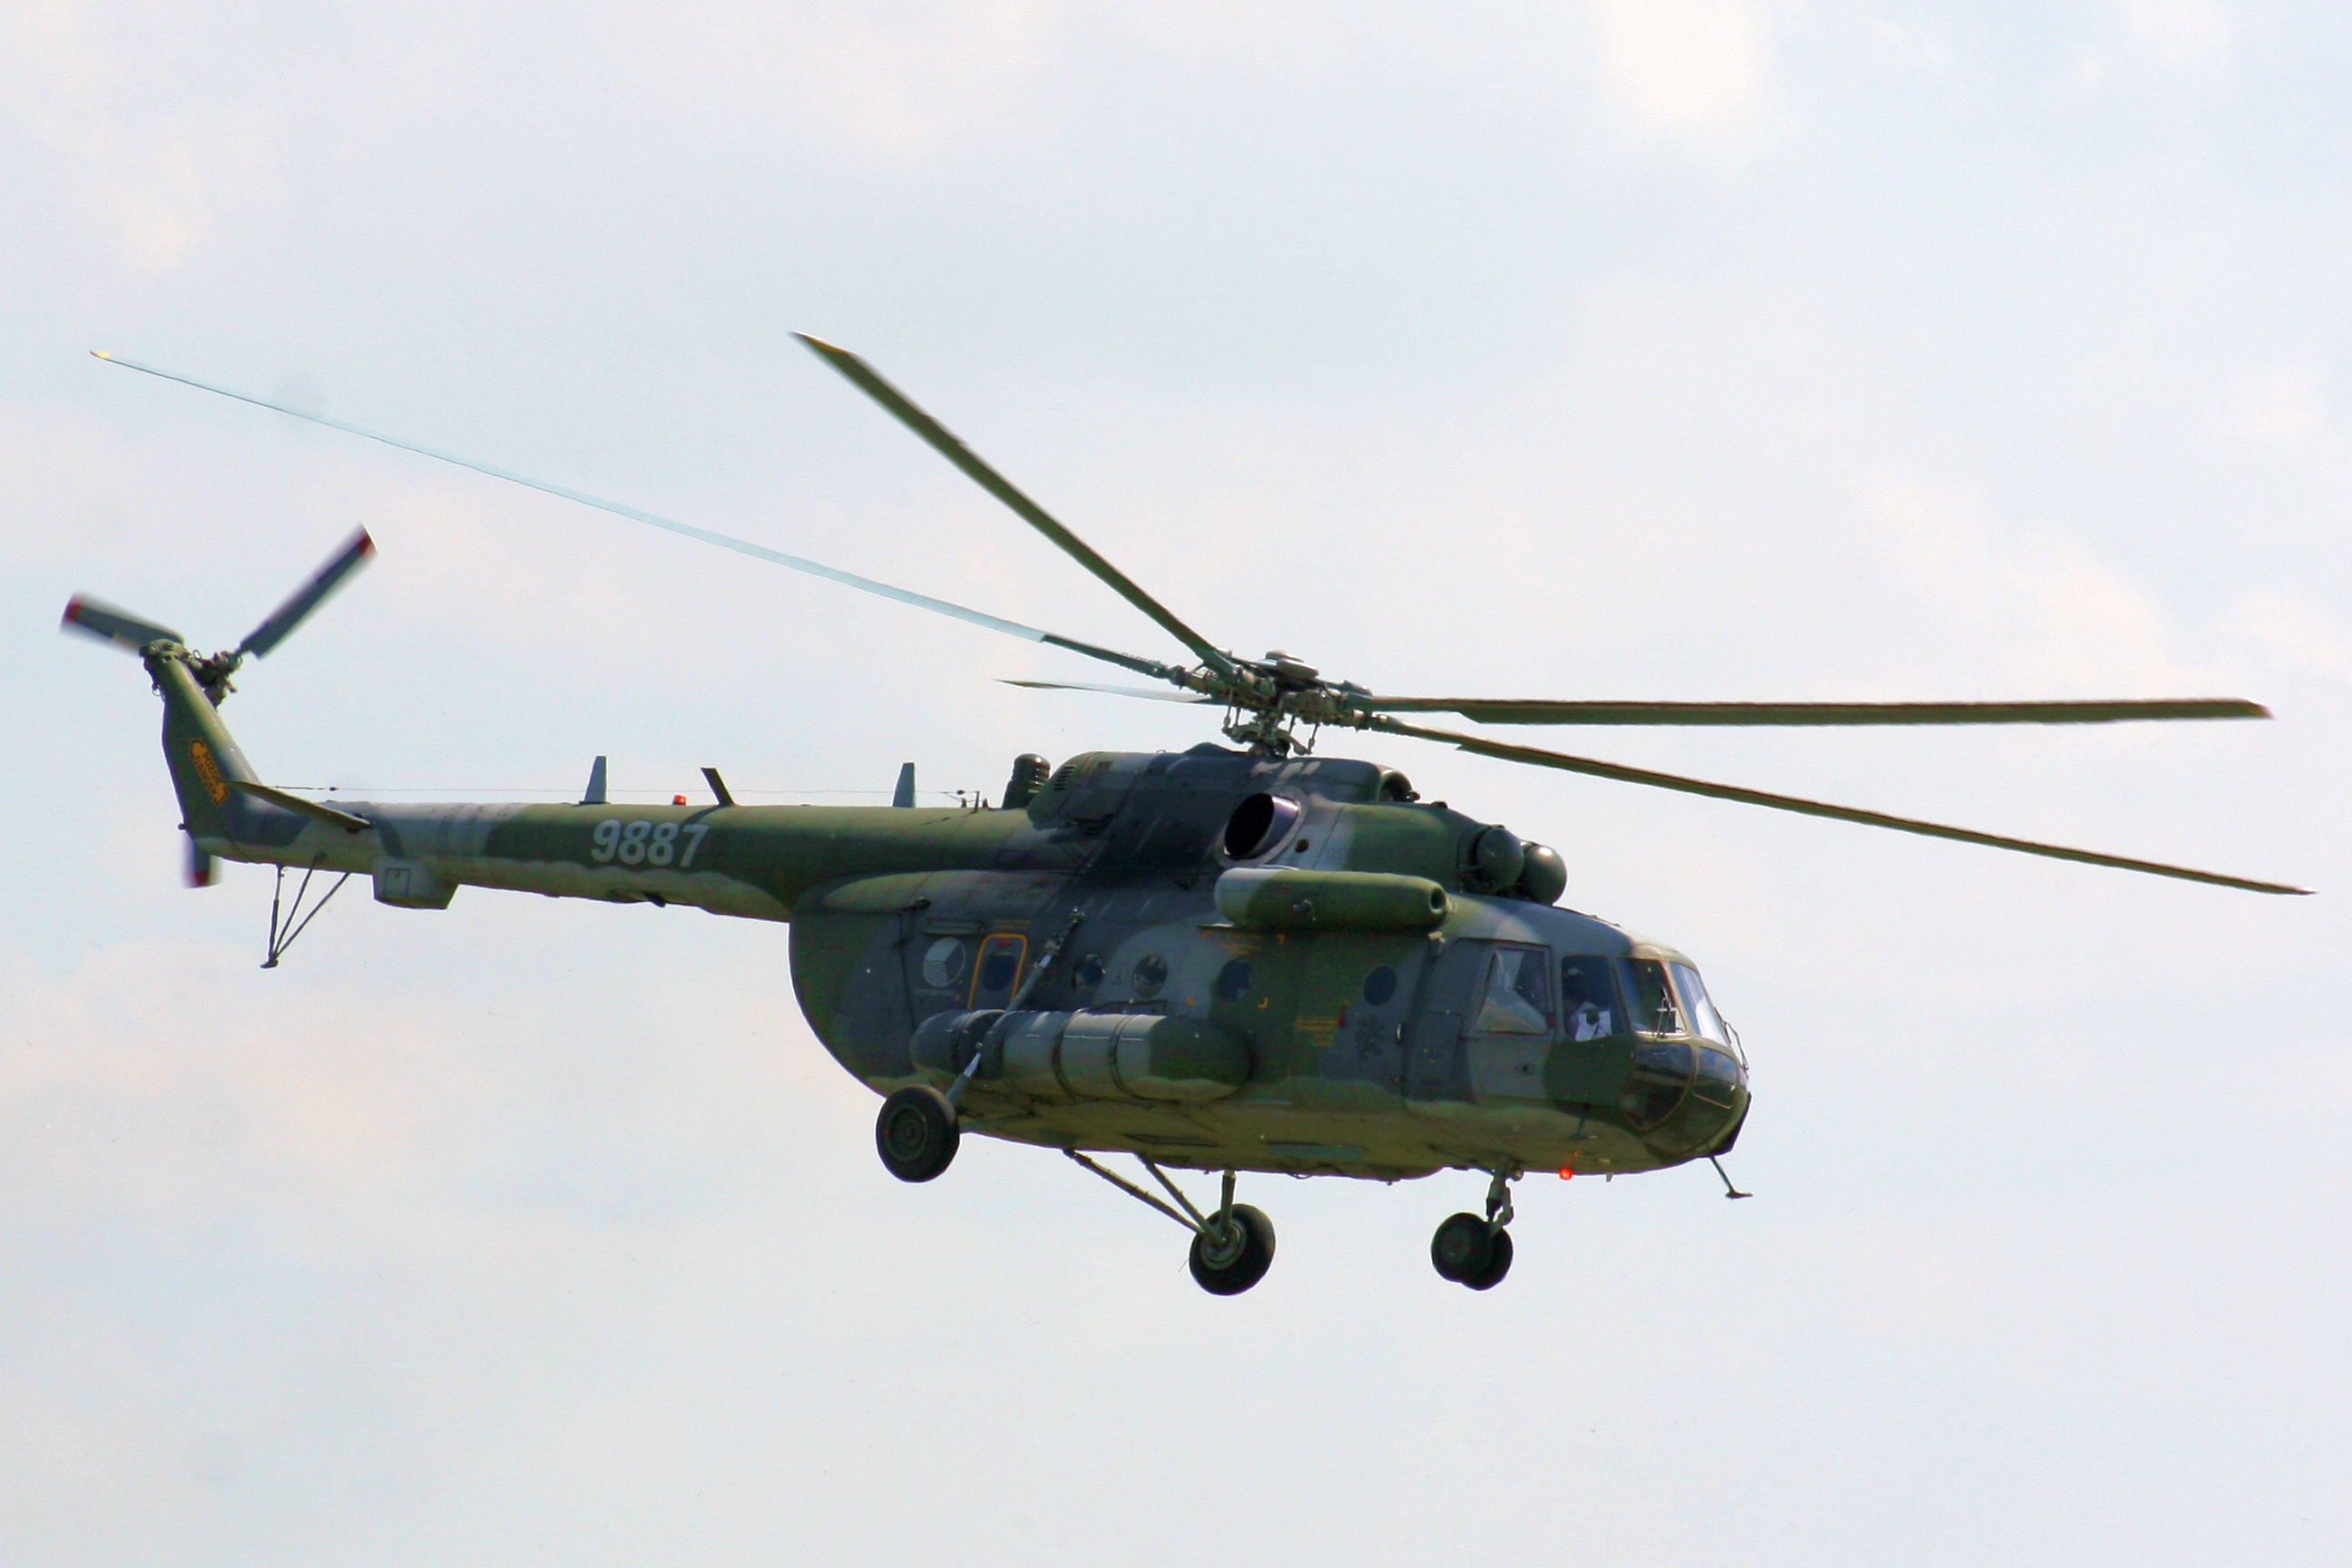 stealth helicopter with File Mi 17 Cz 9887 Lkcv on T5452 Project 20836 Corvette also Page moreover Boeing AH 6 Light Attack And Reconnaissance Helicopter 2F3XC5PDI41 additionally Deadly Russian Sukhoi T50 Pak Fa as well UTH 66 Blackfoot.